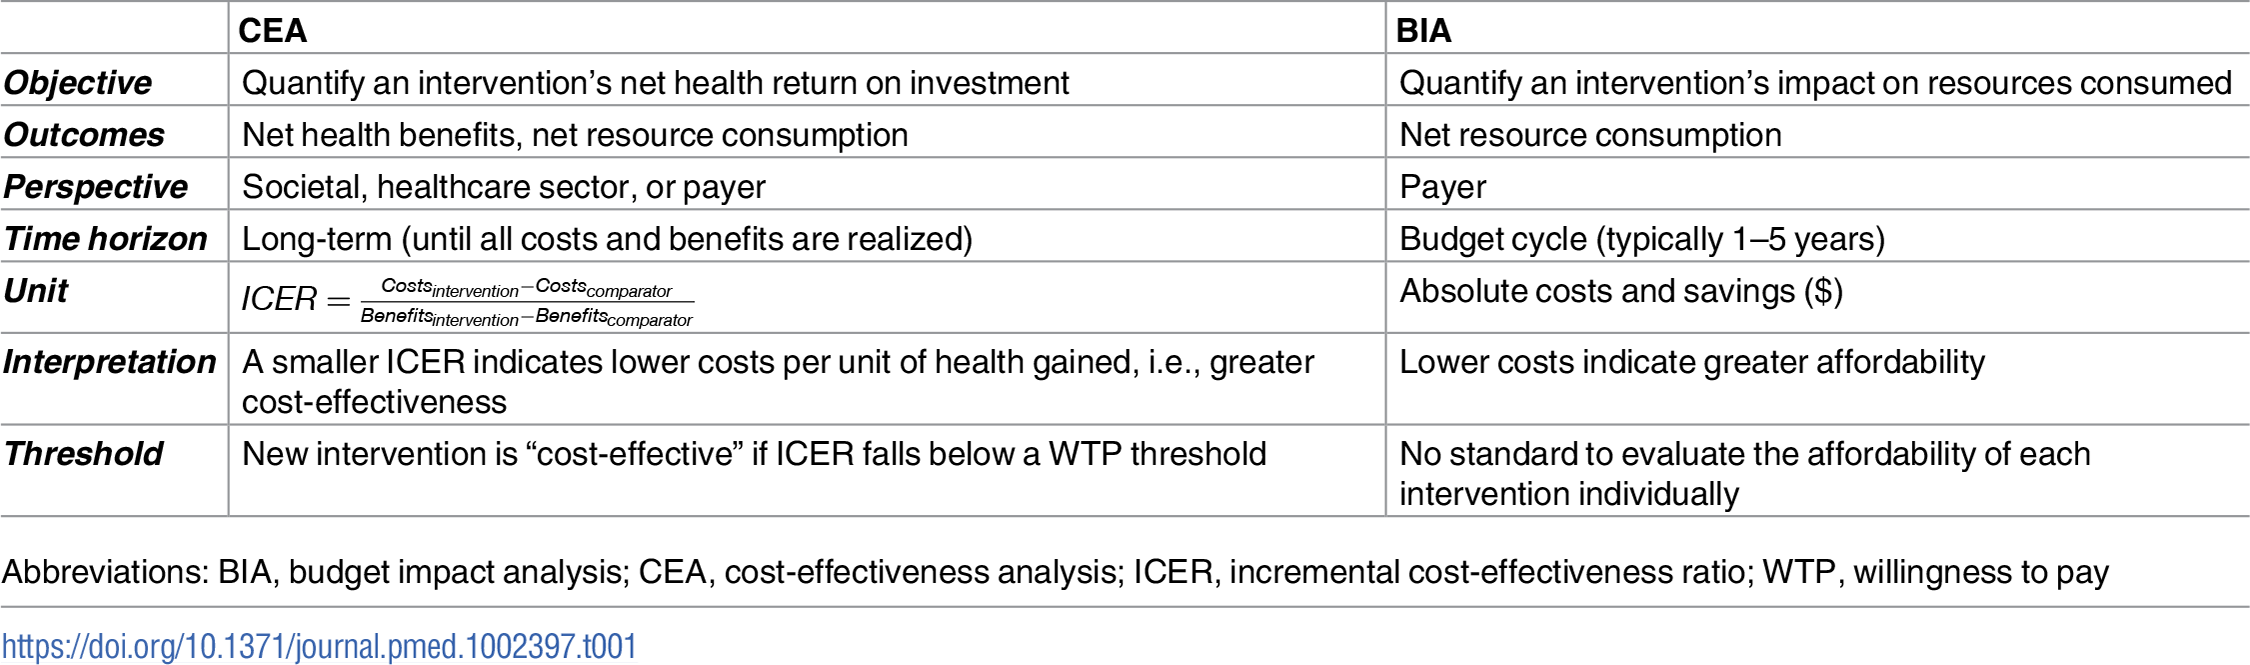 Comparison of CEA and BIA.